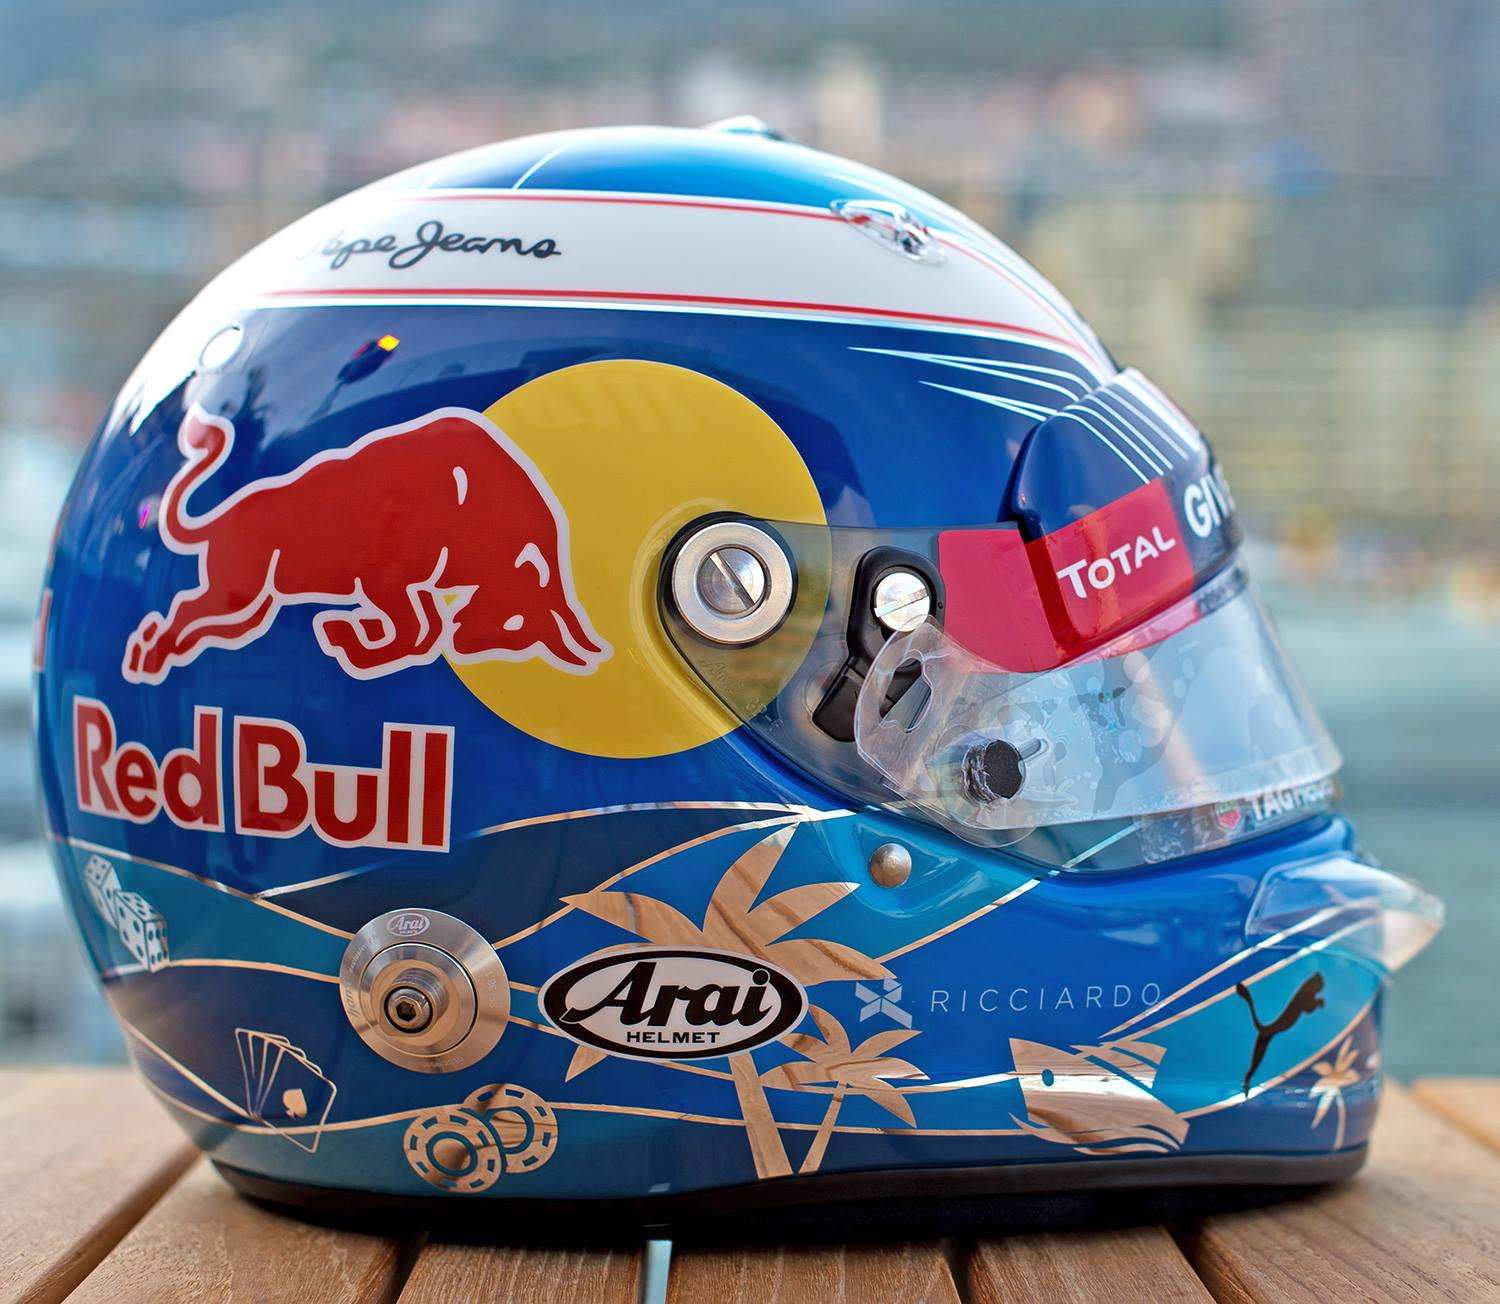 Helm 37 arai gp 6 d ricciardo monaco 2016 by jens munser for Helm design